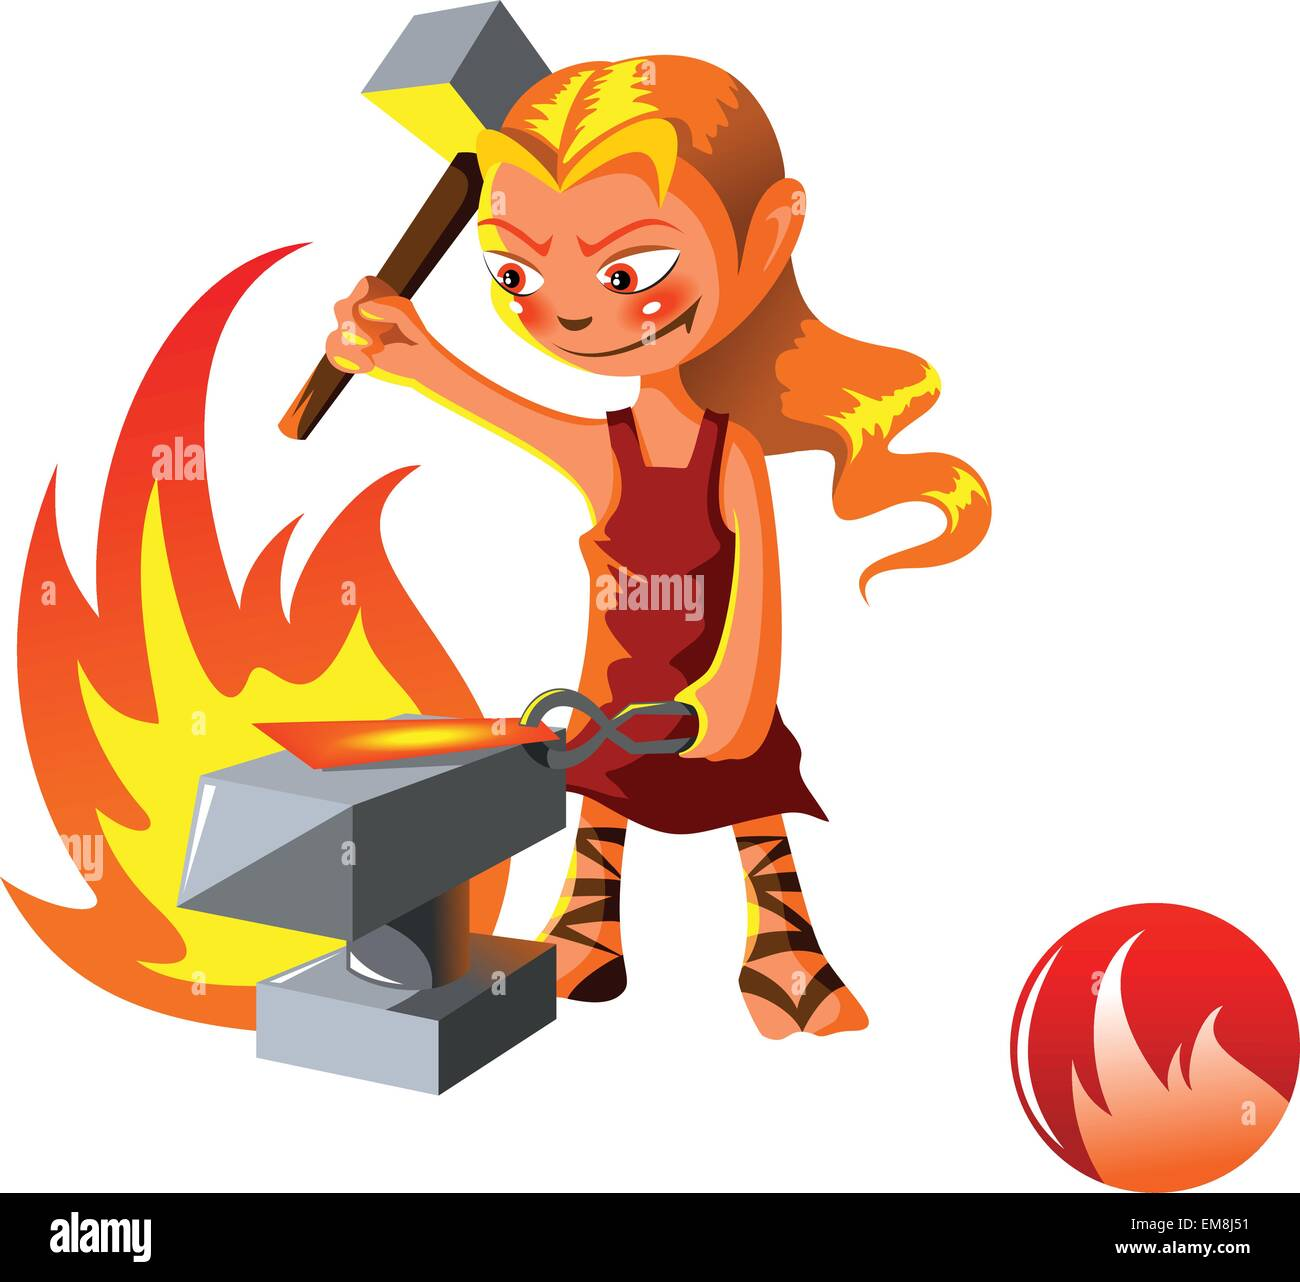 Elemental of Fire - Stock Image